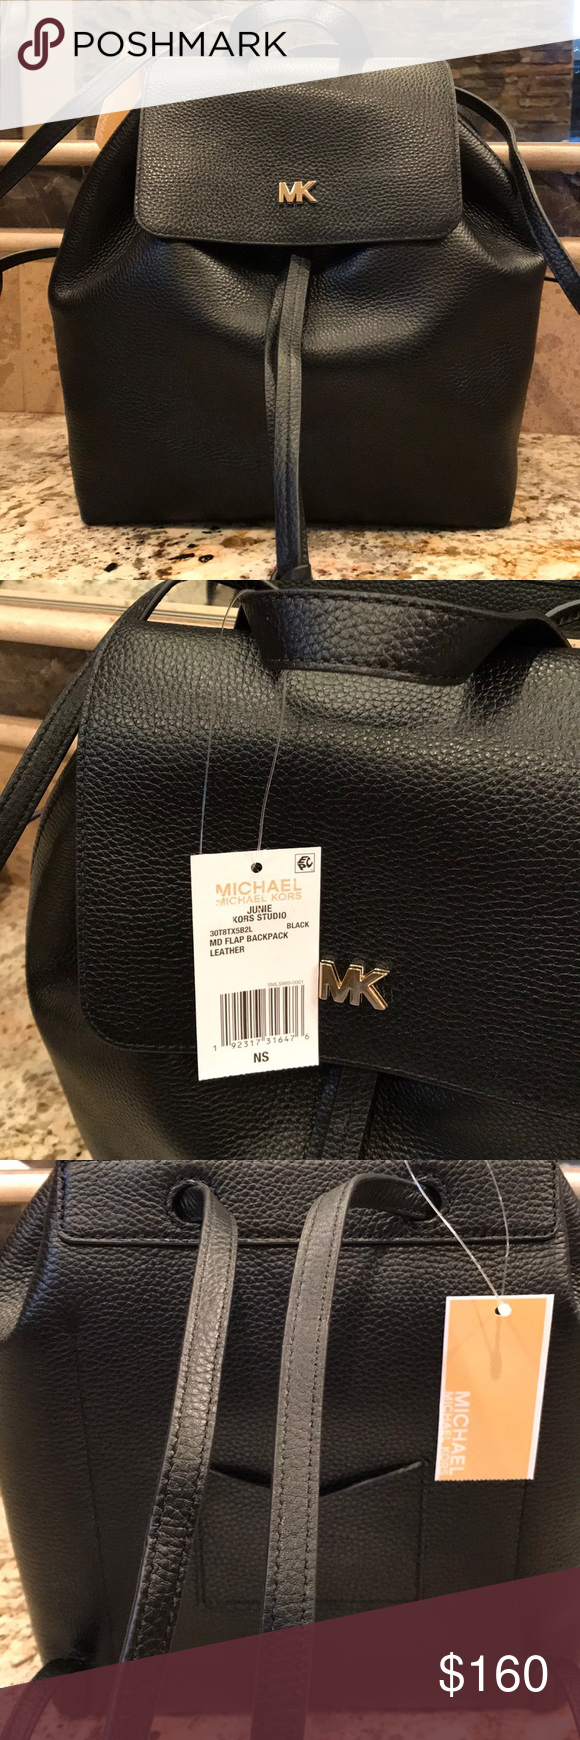 976258036500 Michael Kors Medium Junie Flap Backpack Brand new with tags. Black pebbled  leather with gold logo. The logo could pass for gold or silver.